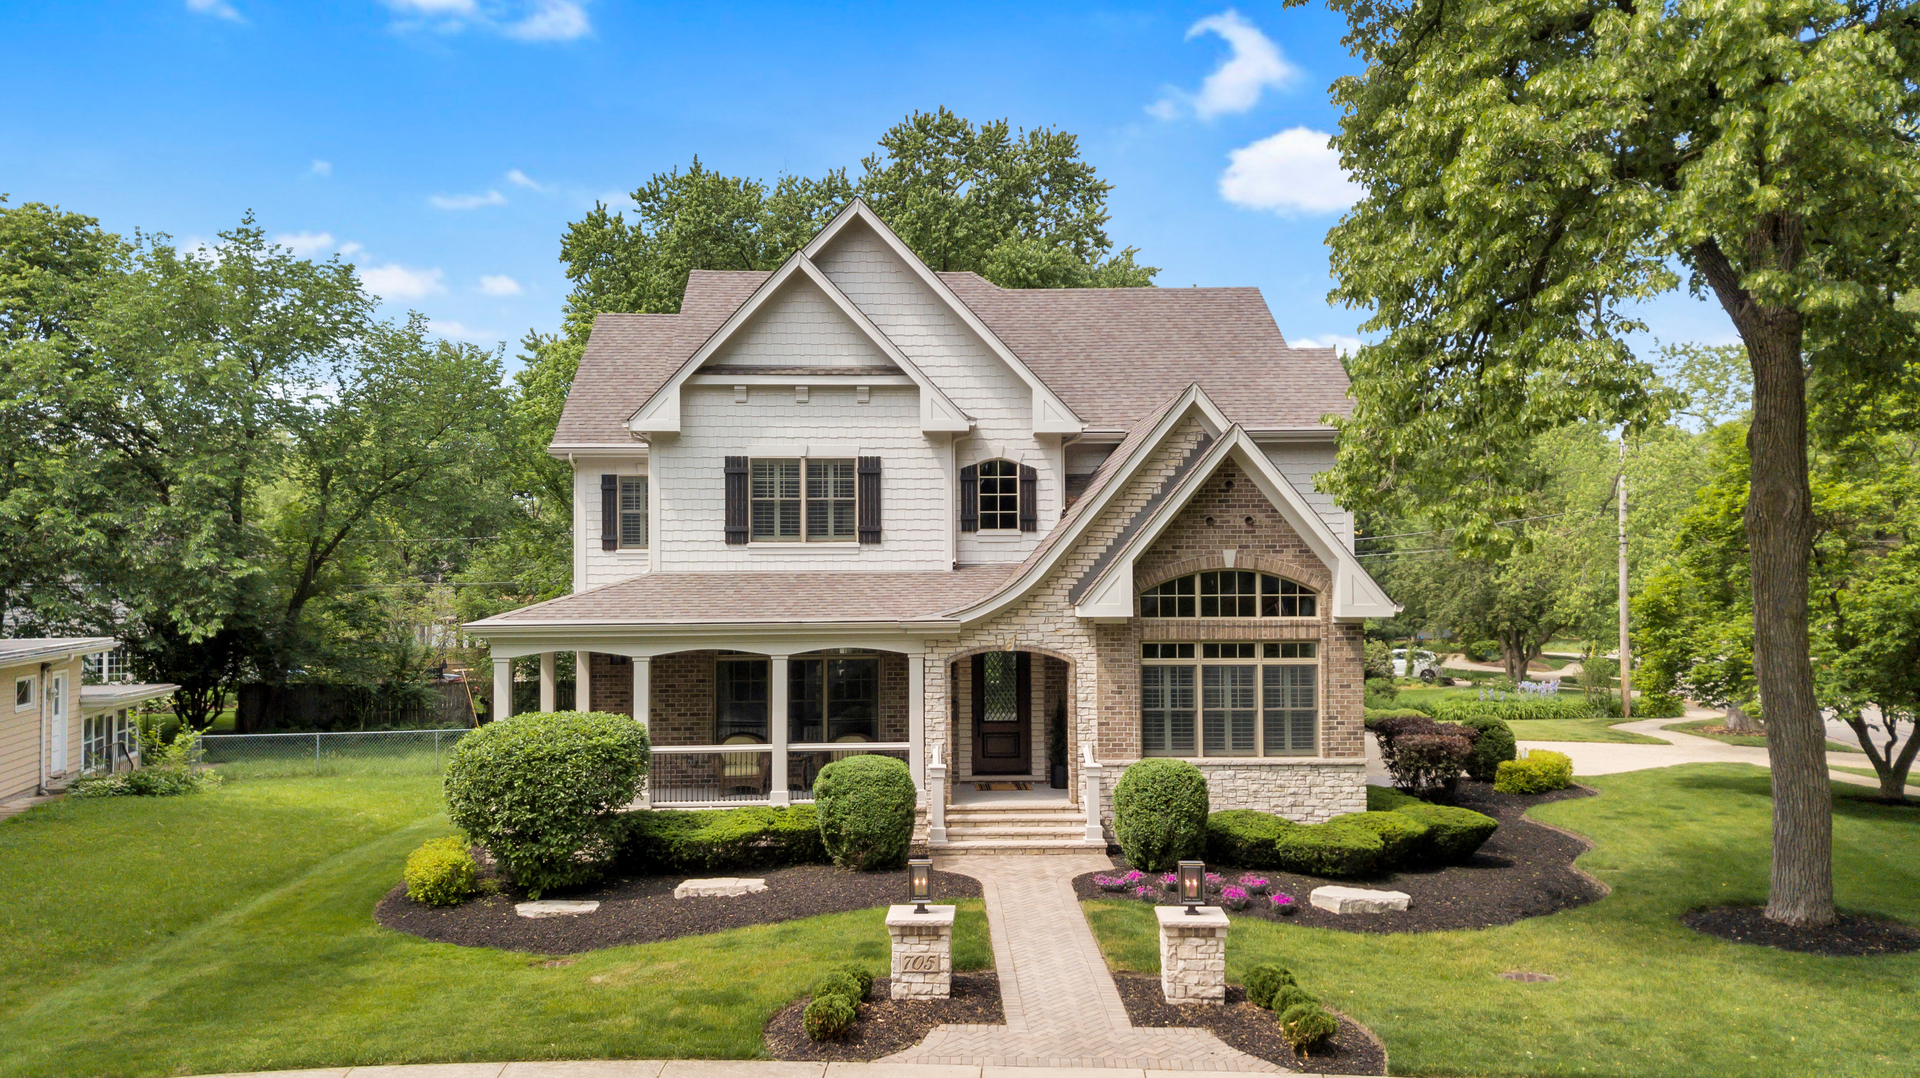 Photo of 705 Sunset Drive, Naperville, IL 60540